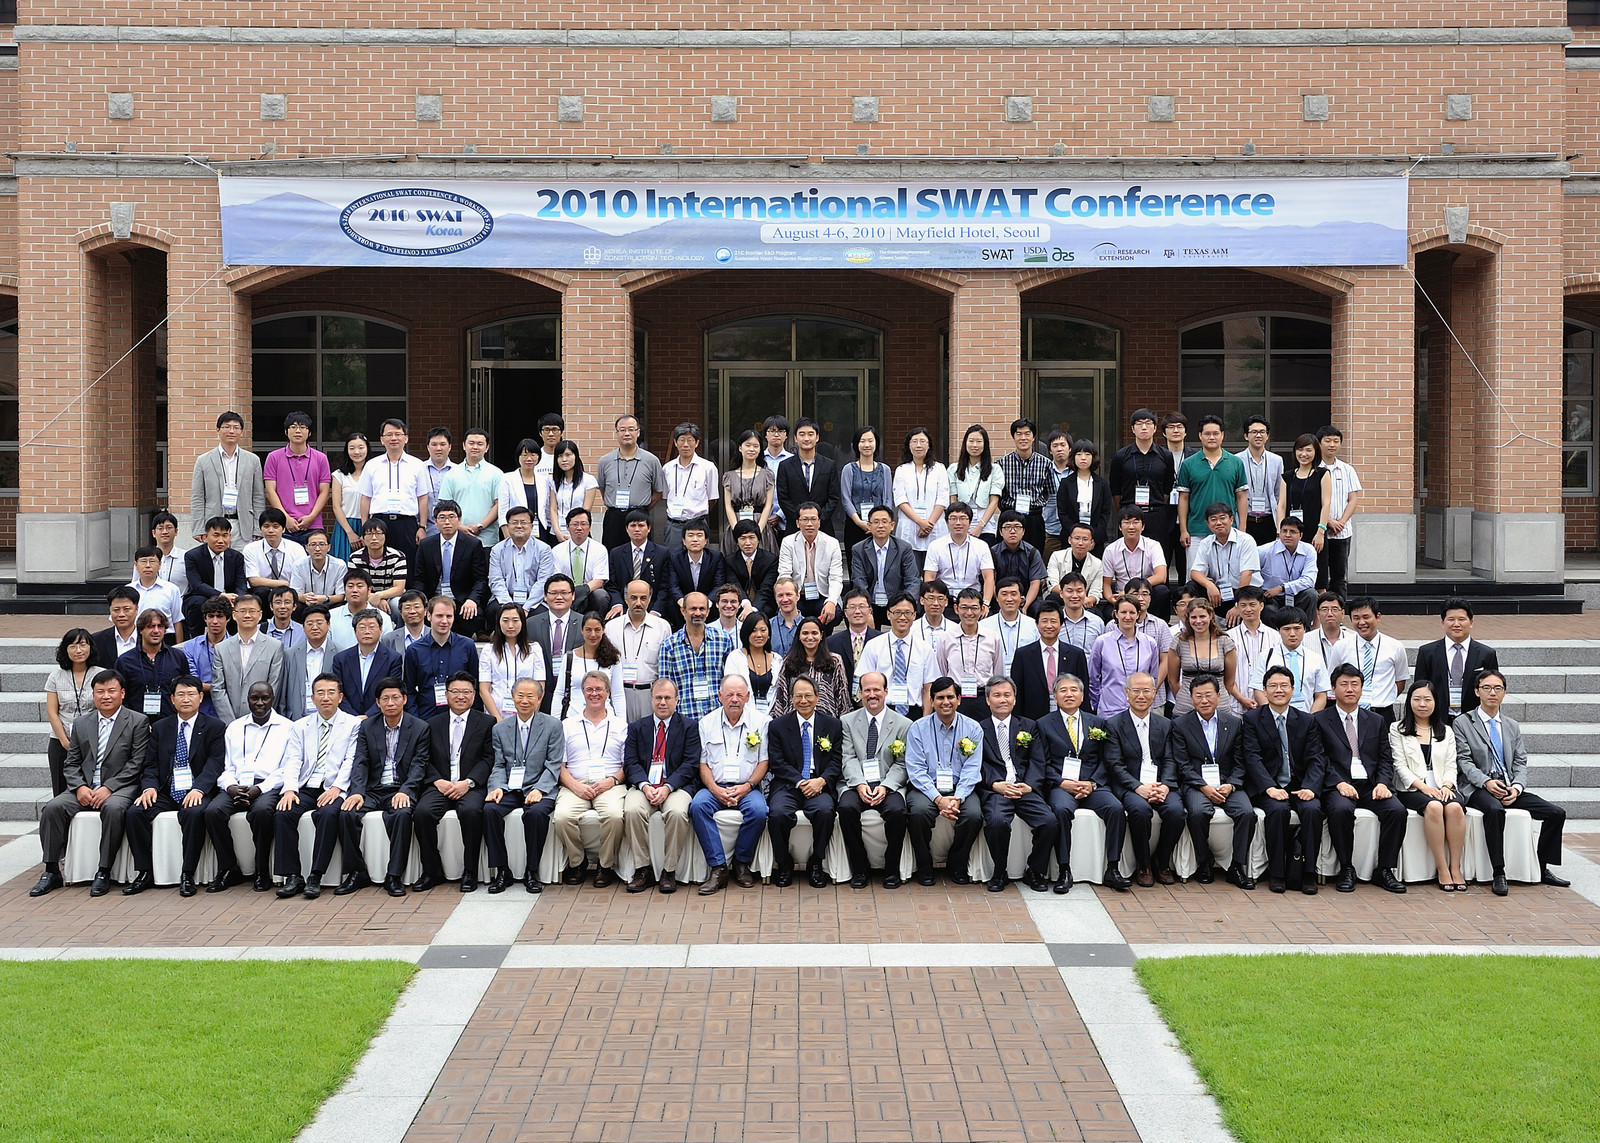 2010-SWAT-Conf-Group-Photo.jpg